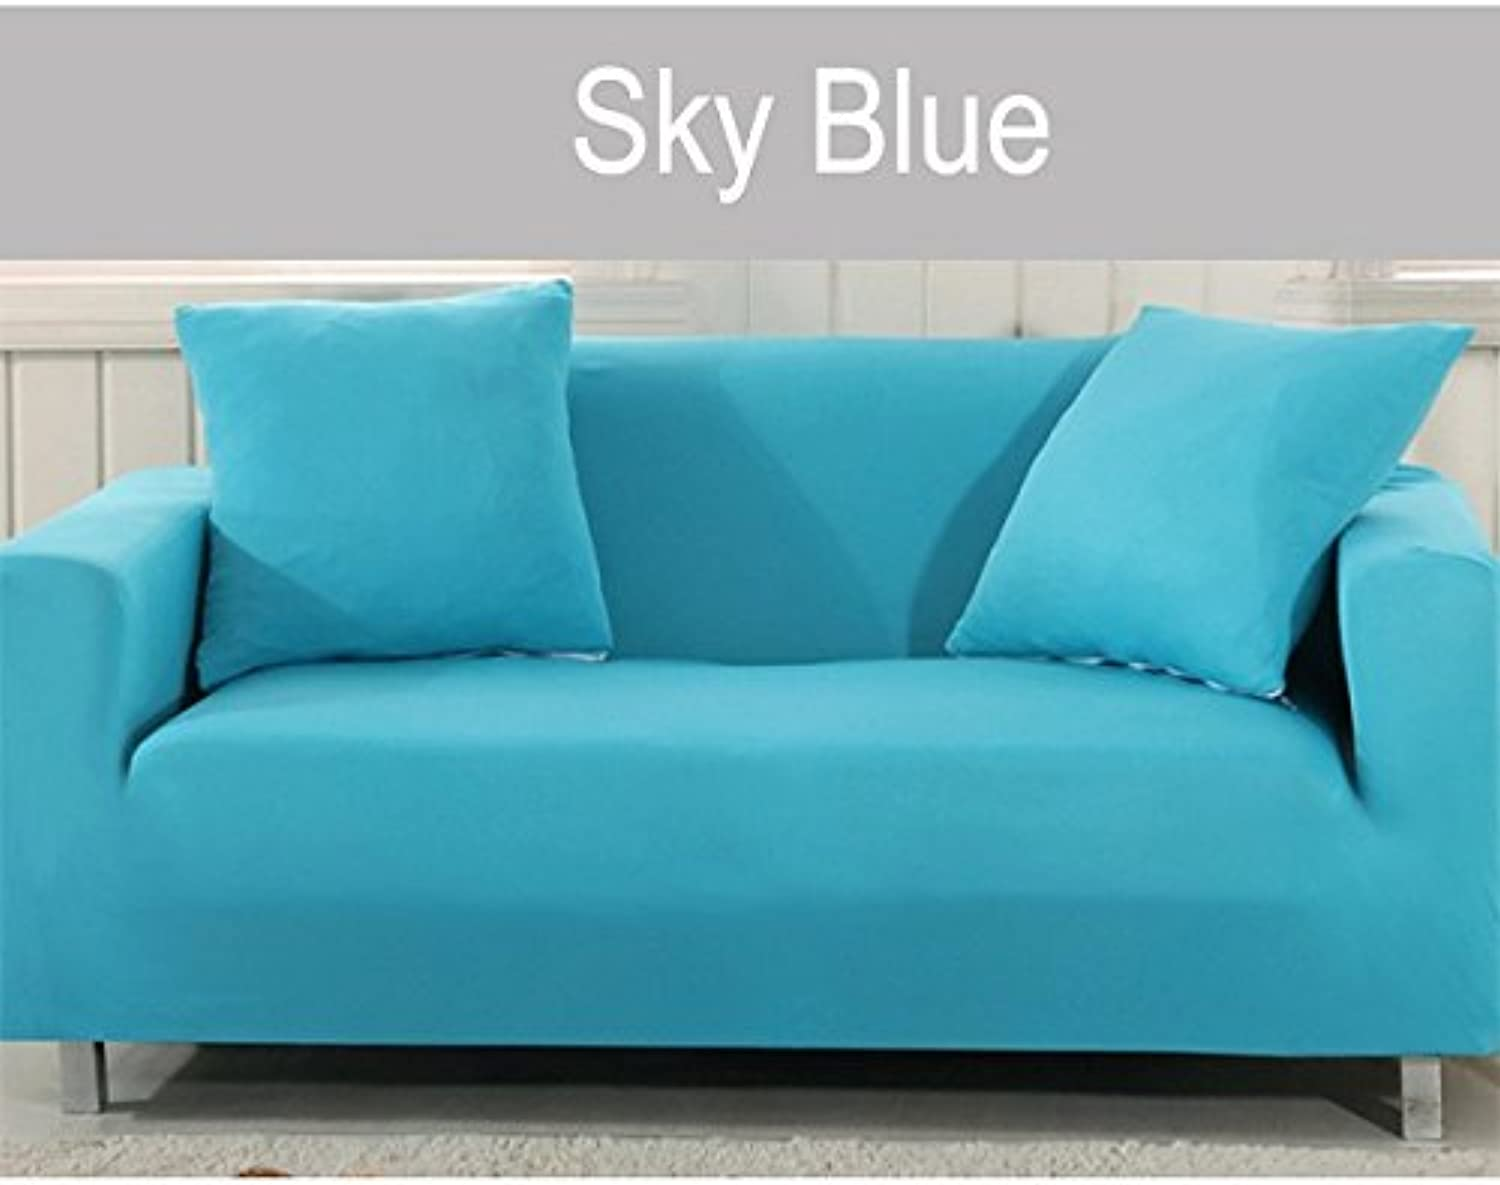 Farmerly Coffee Covers on The Sofa armchairs Couch Cover Fabric slipcover Elastic Corner Sofa Cover l Shaped Stretch Furniture Sofa Cover   Sky bluee, 1 Seater Cover